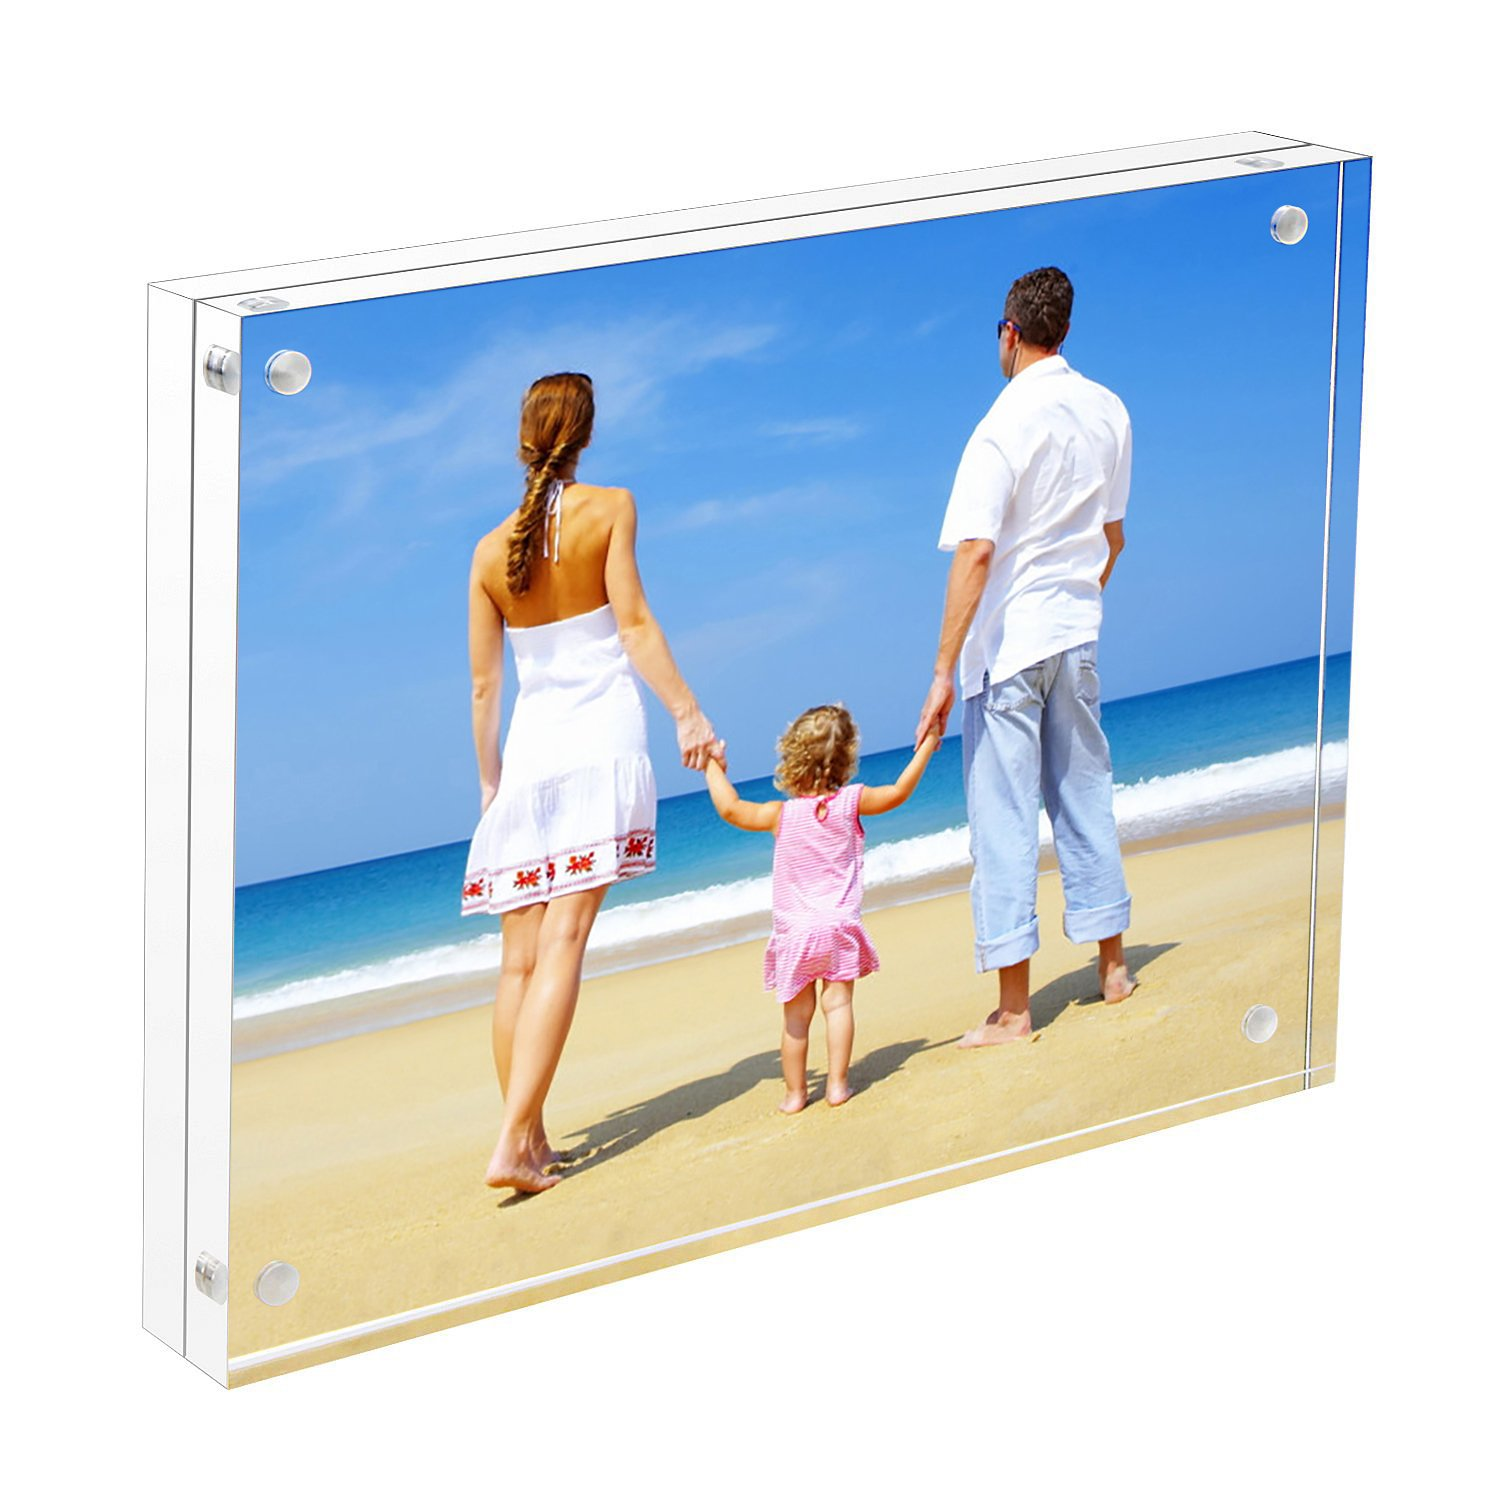 8.5x11 Acrylic Frame, NIUBEE Clear Certificate Document Magnetic Photo Frame for Tabletop Display with Gift Box